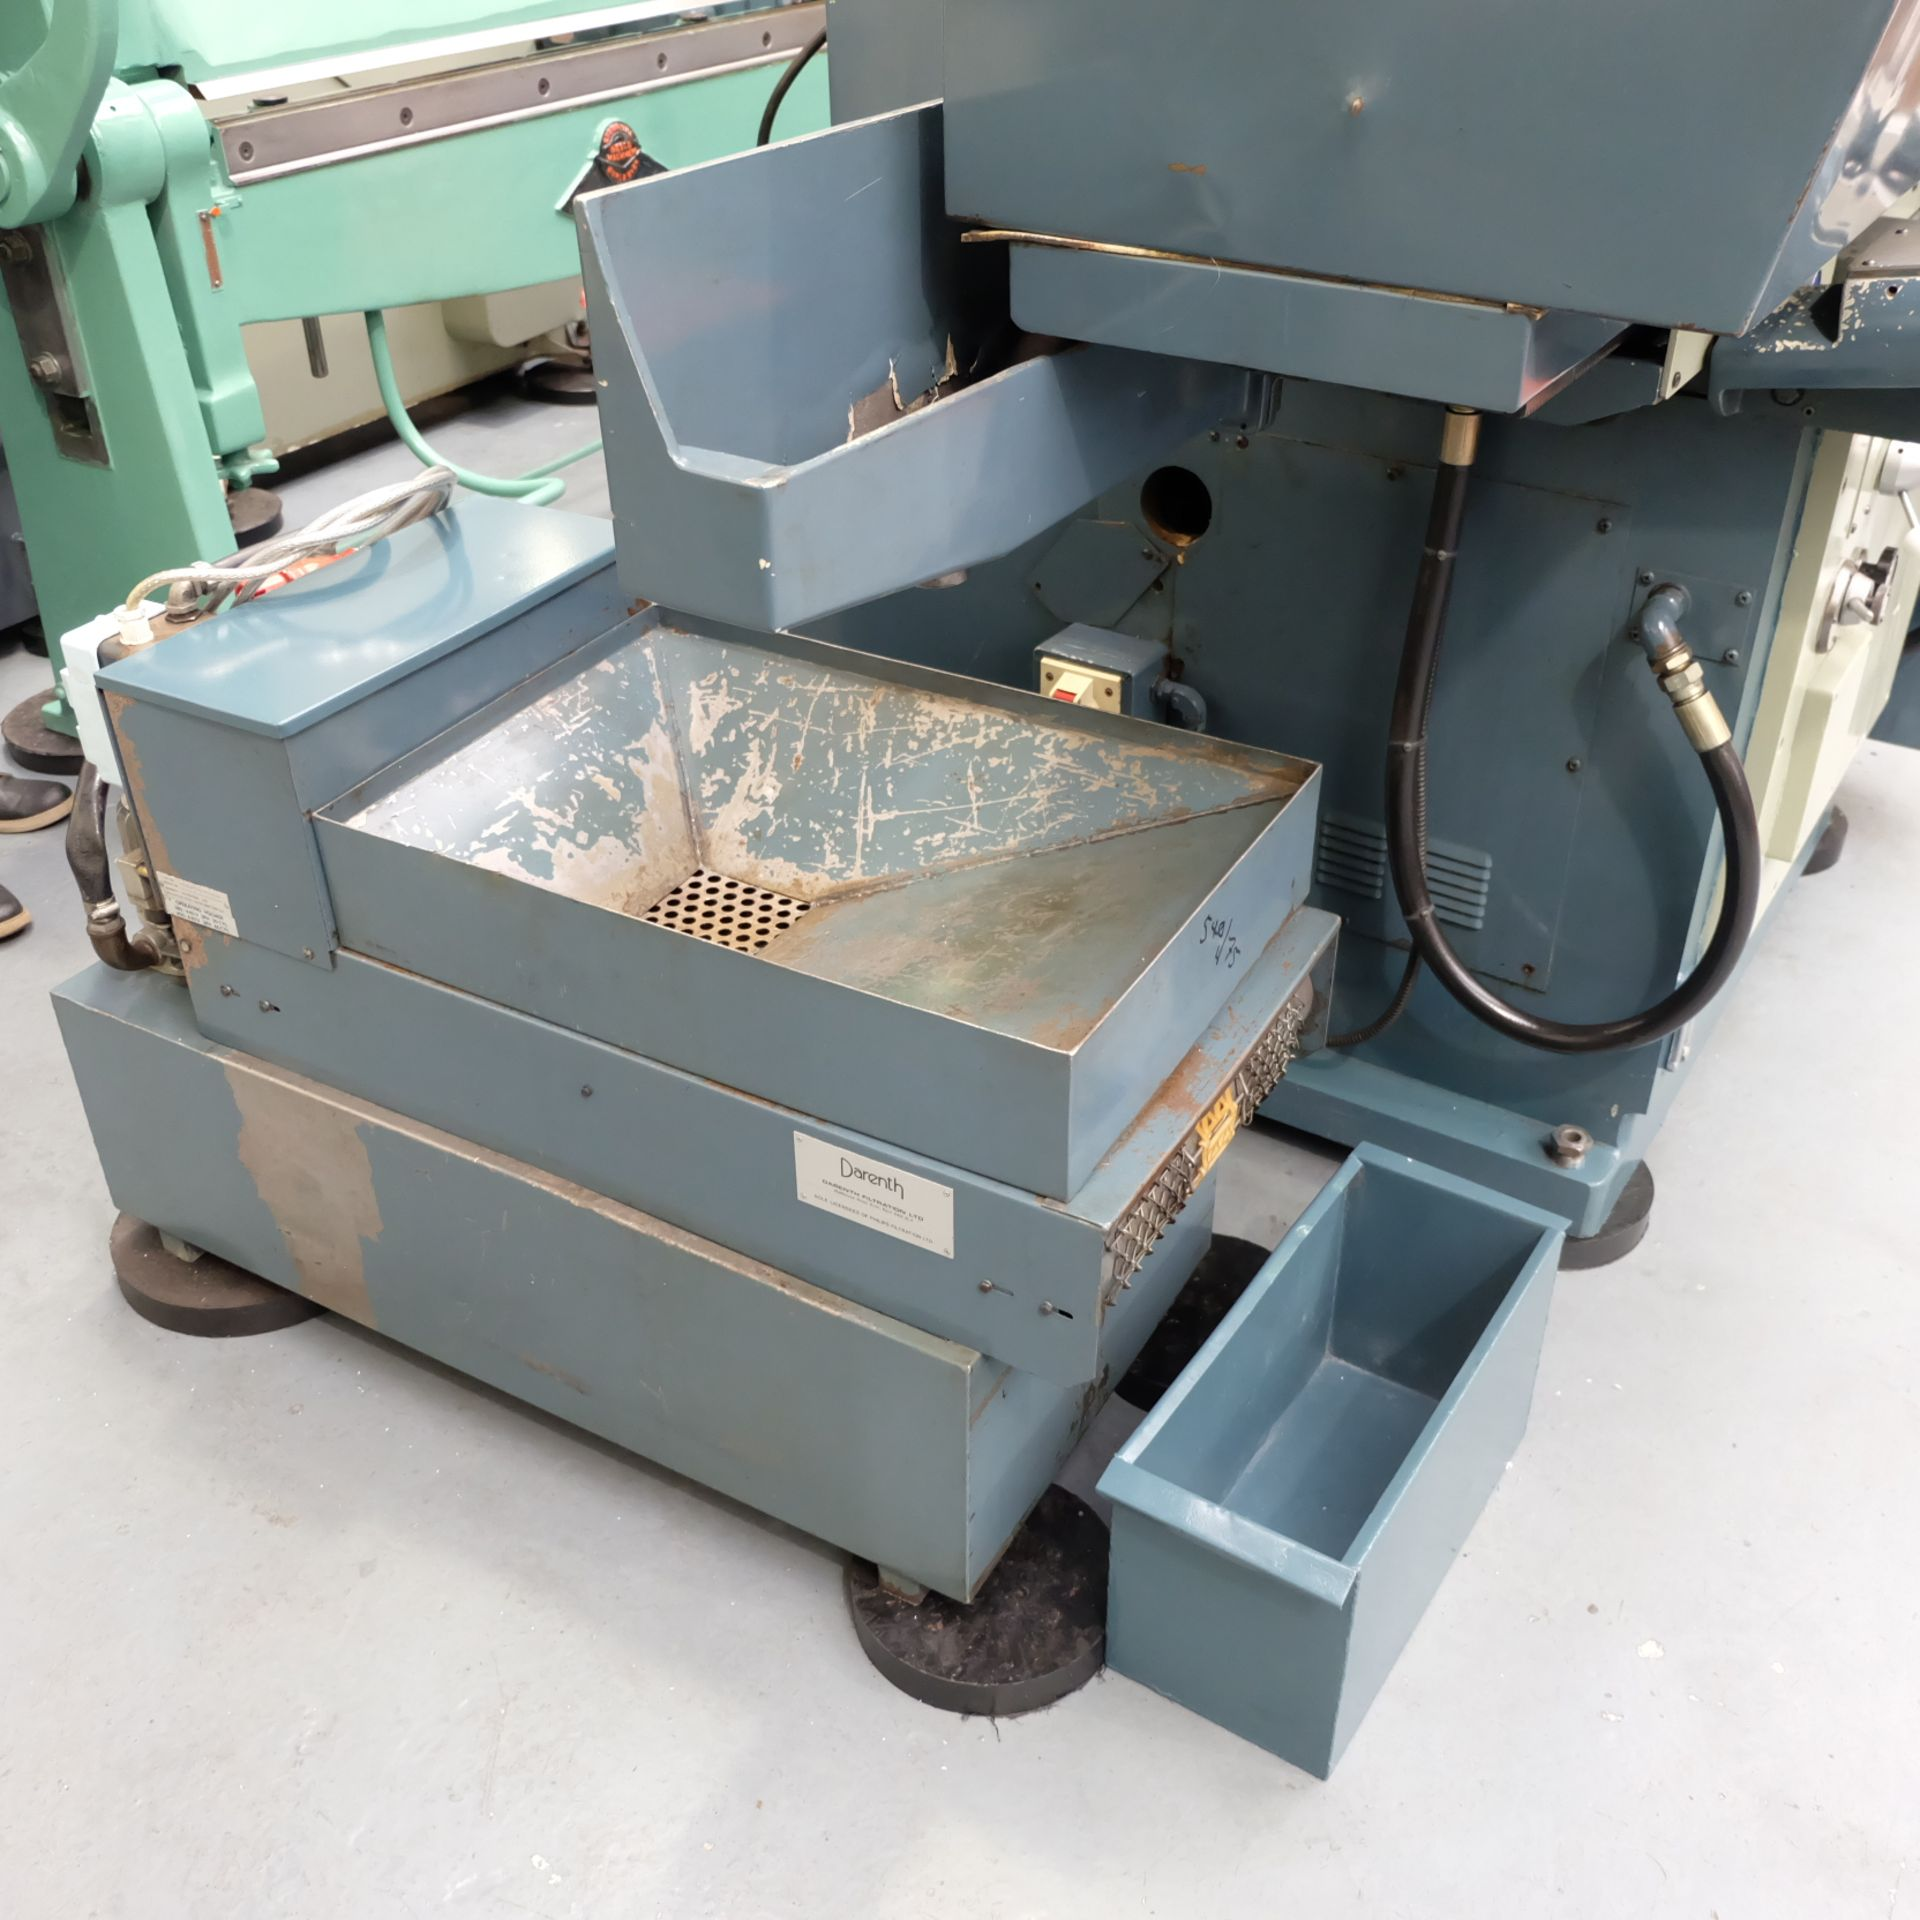 Lot 3 - Jones & Shipman Type 1415 Toolroom Surface Grinder. With Magnetic Chuck & Coolant Tank.